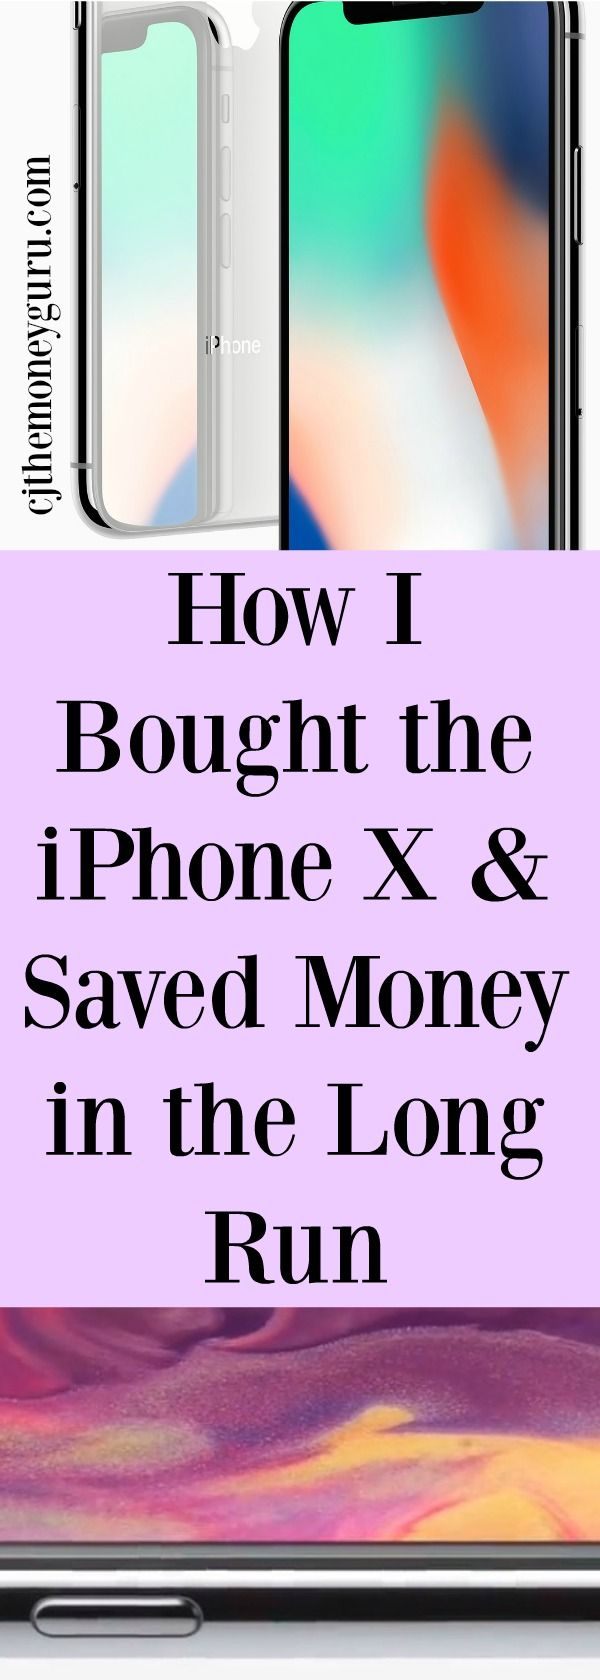 I Bought the iPhone X, Switched Phone Carries and Saved Money in the Long Run.